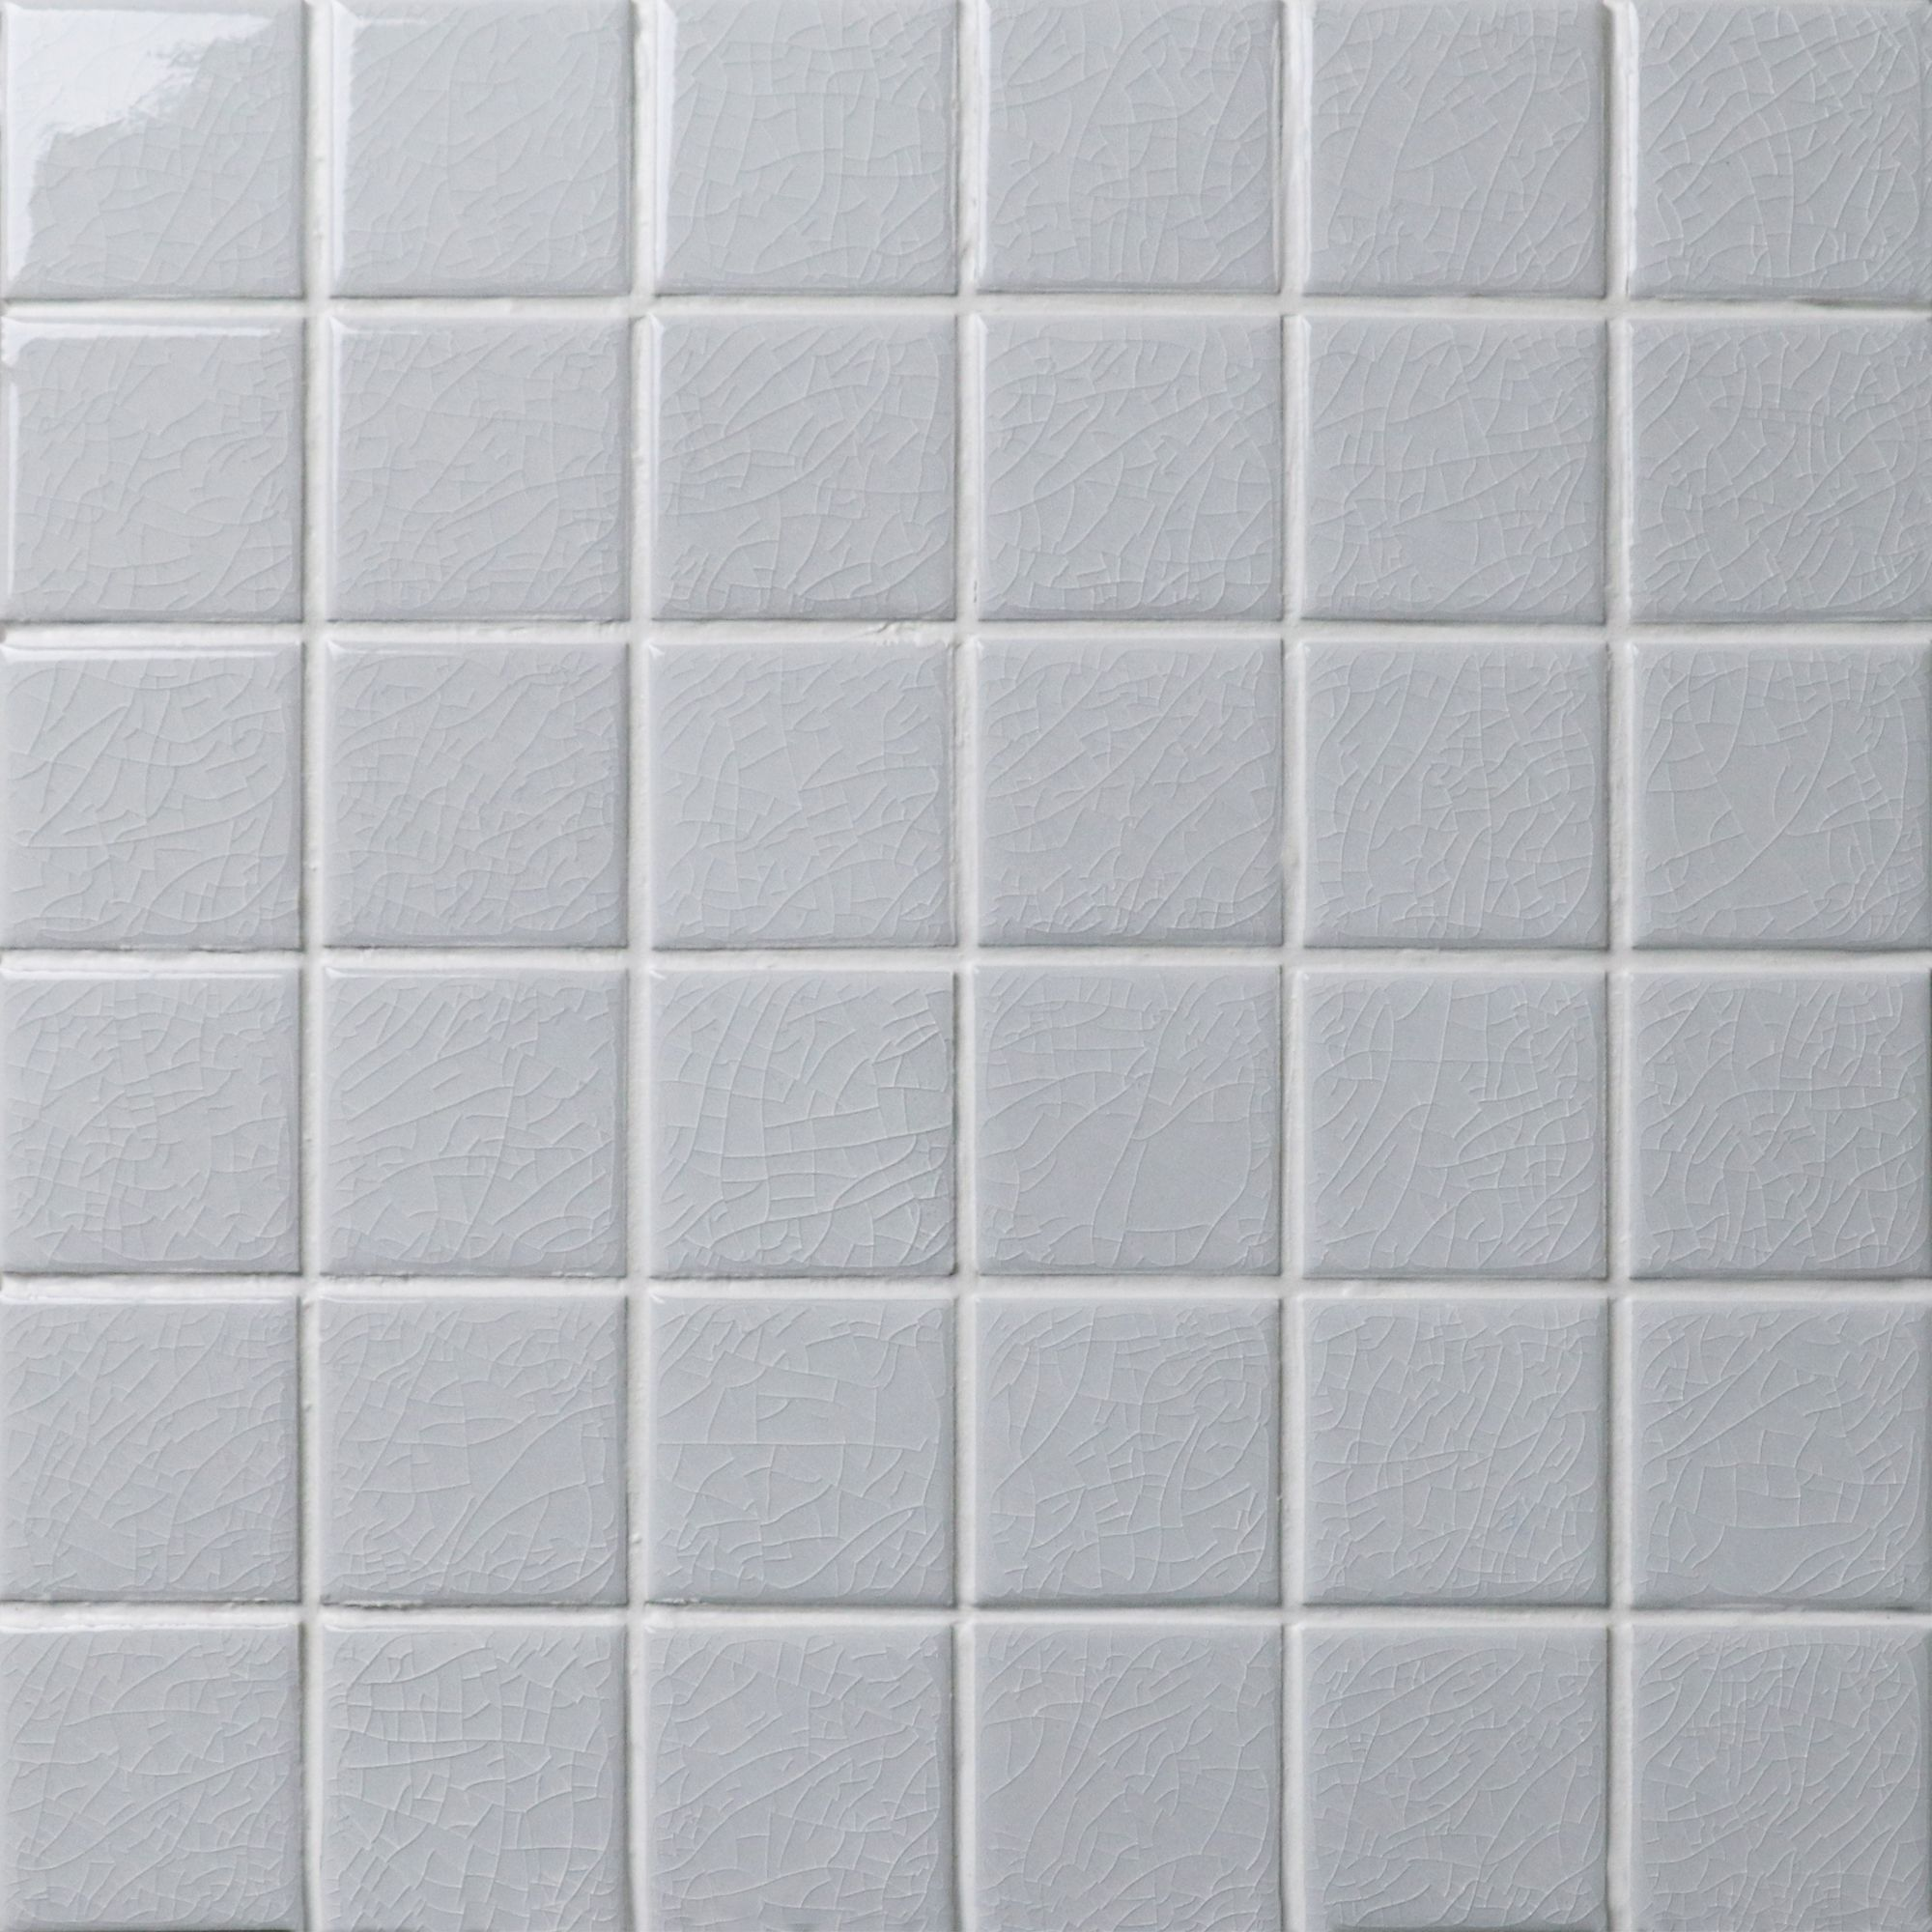 Light Grey Hue Can Easily Create A Warm And Cozy Space The 48x48mm Crackle Mosaic Pattern Is Perfectly Used In Poo Mosaic Flooring Mosaic Floor Tile Pool Tile